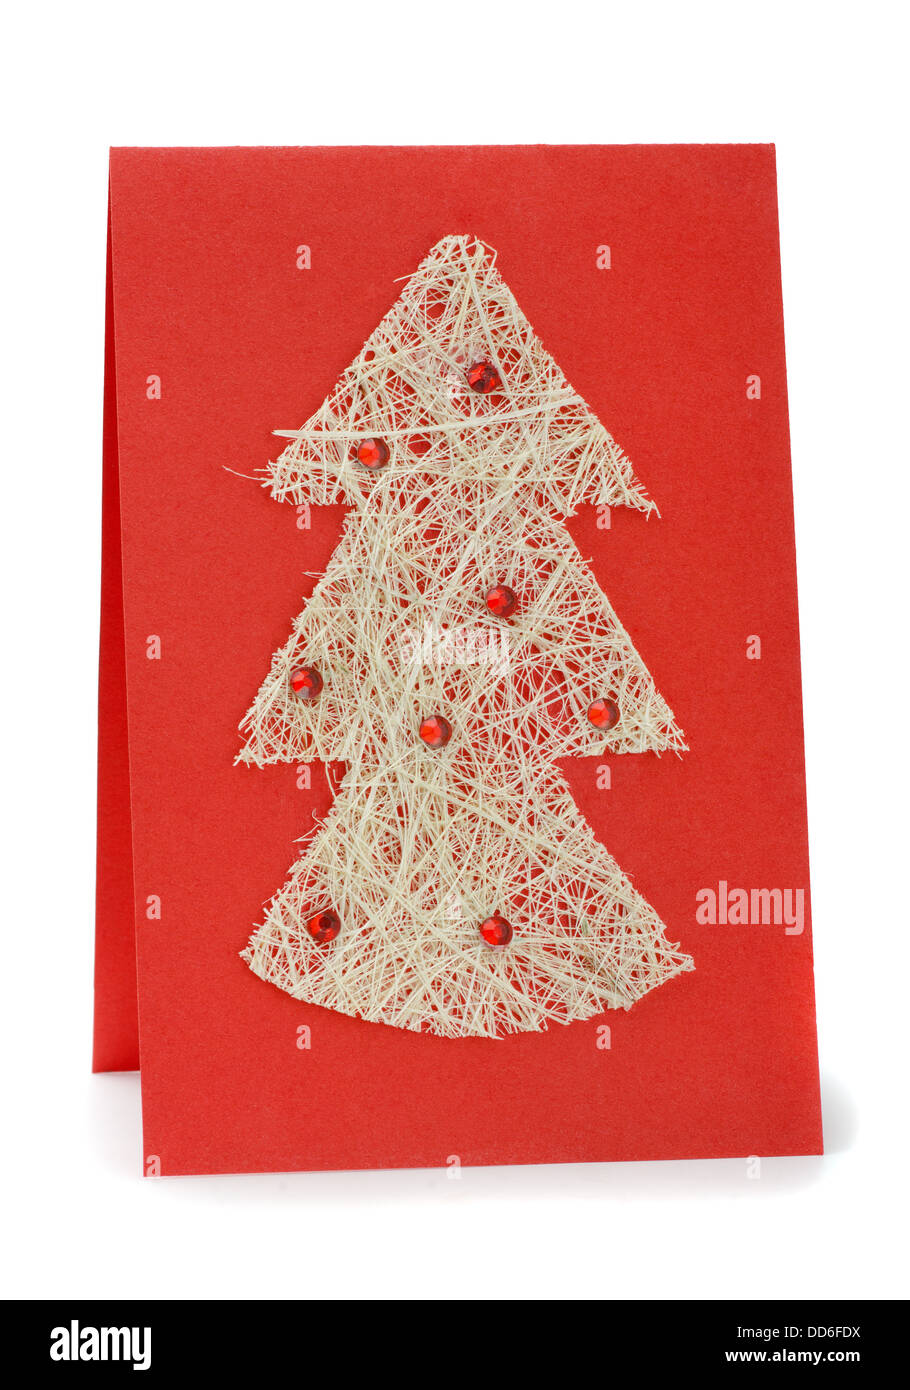 Handmade Christmas greeting card isolated on white - Stock Image